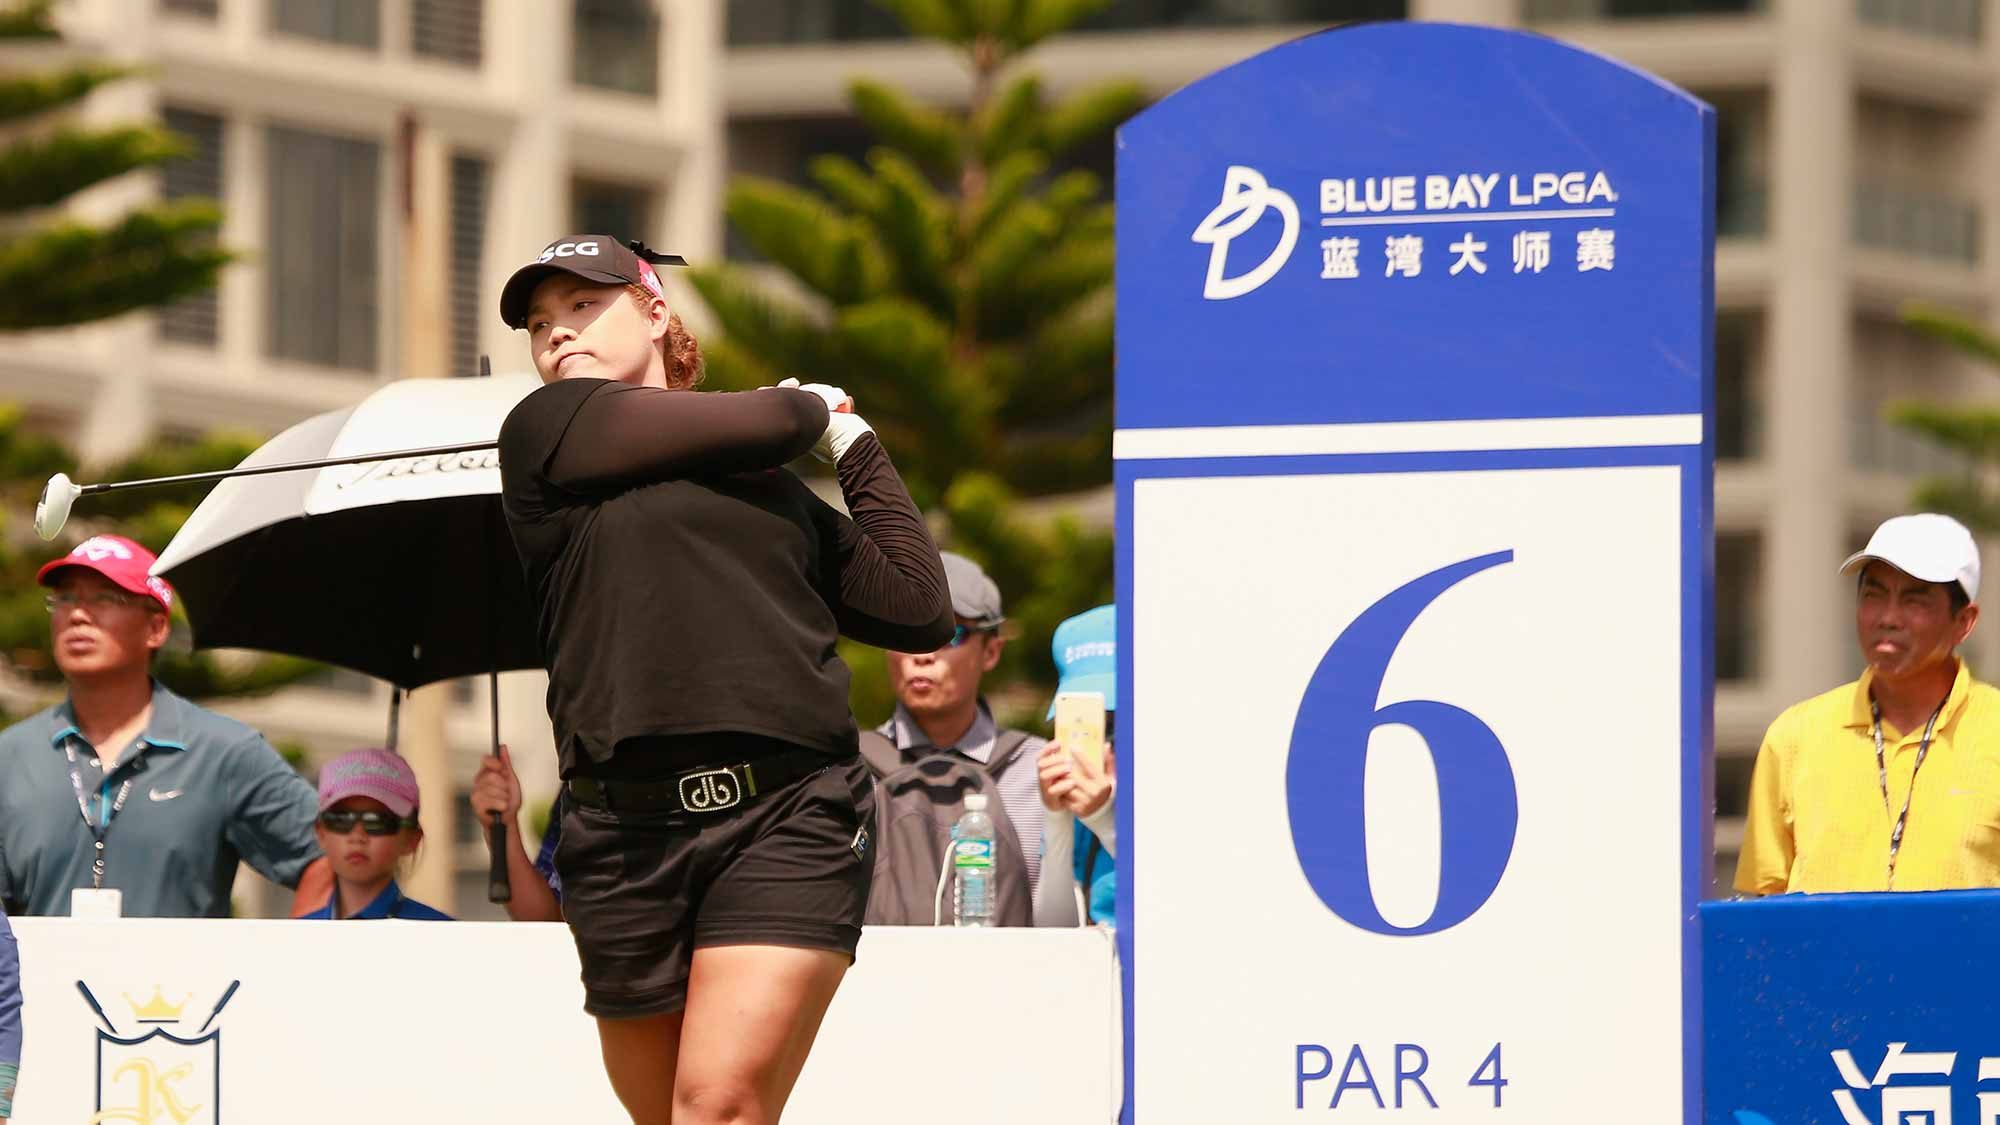 Ariya Jutanugarn of Thailand tee off during the final round of Blue Bay LPGA on Day 4